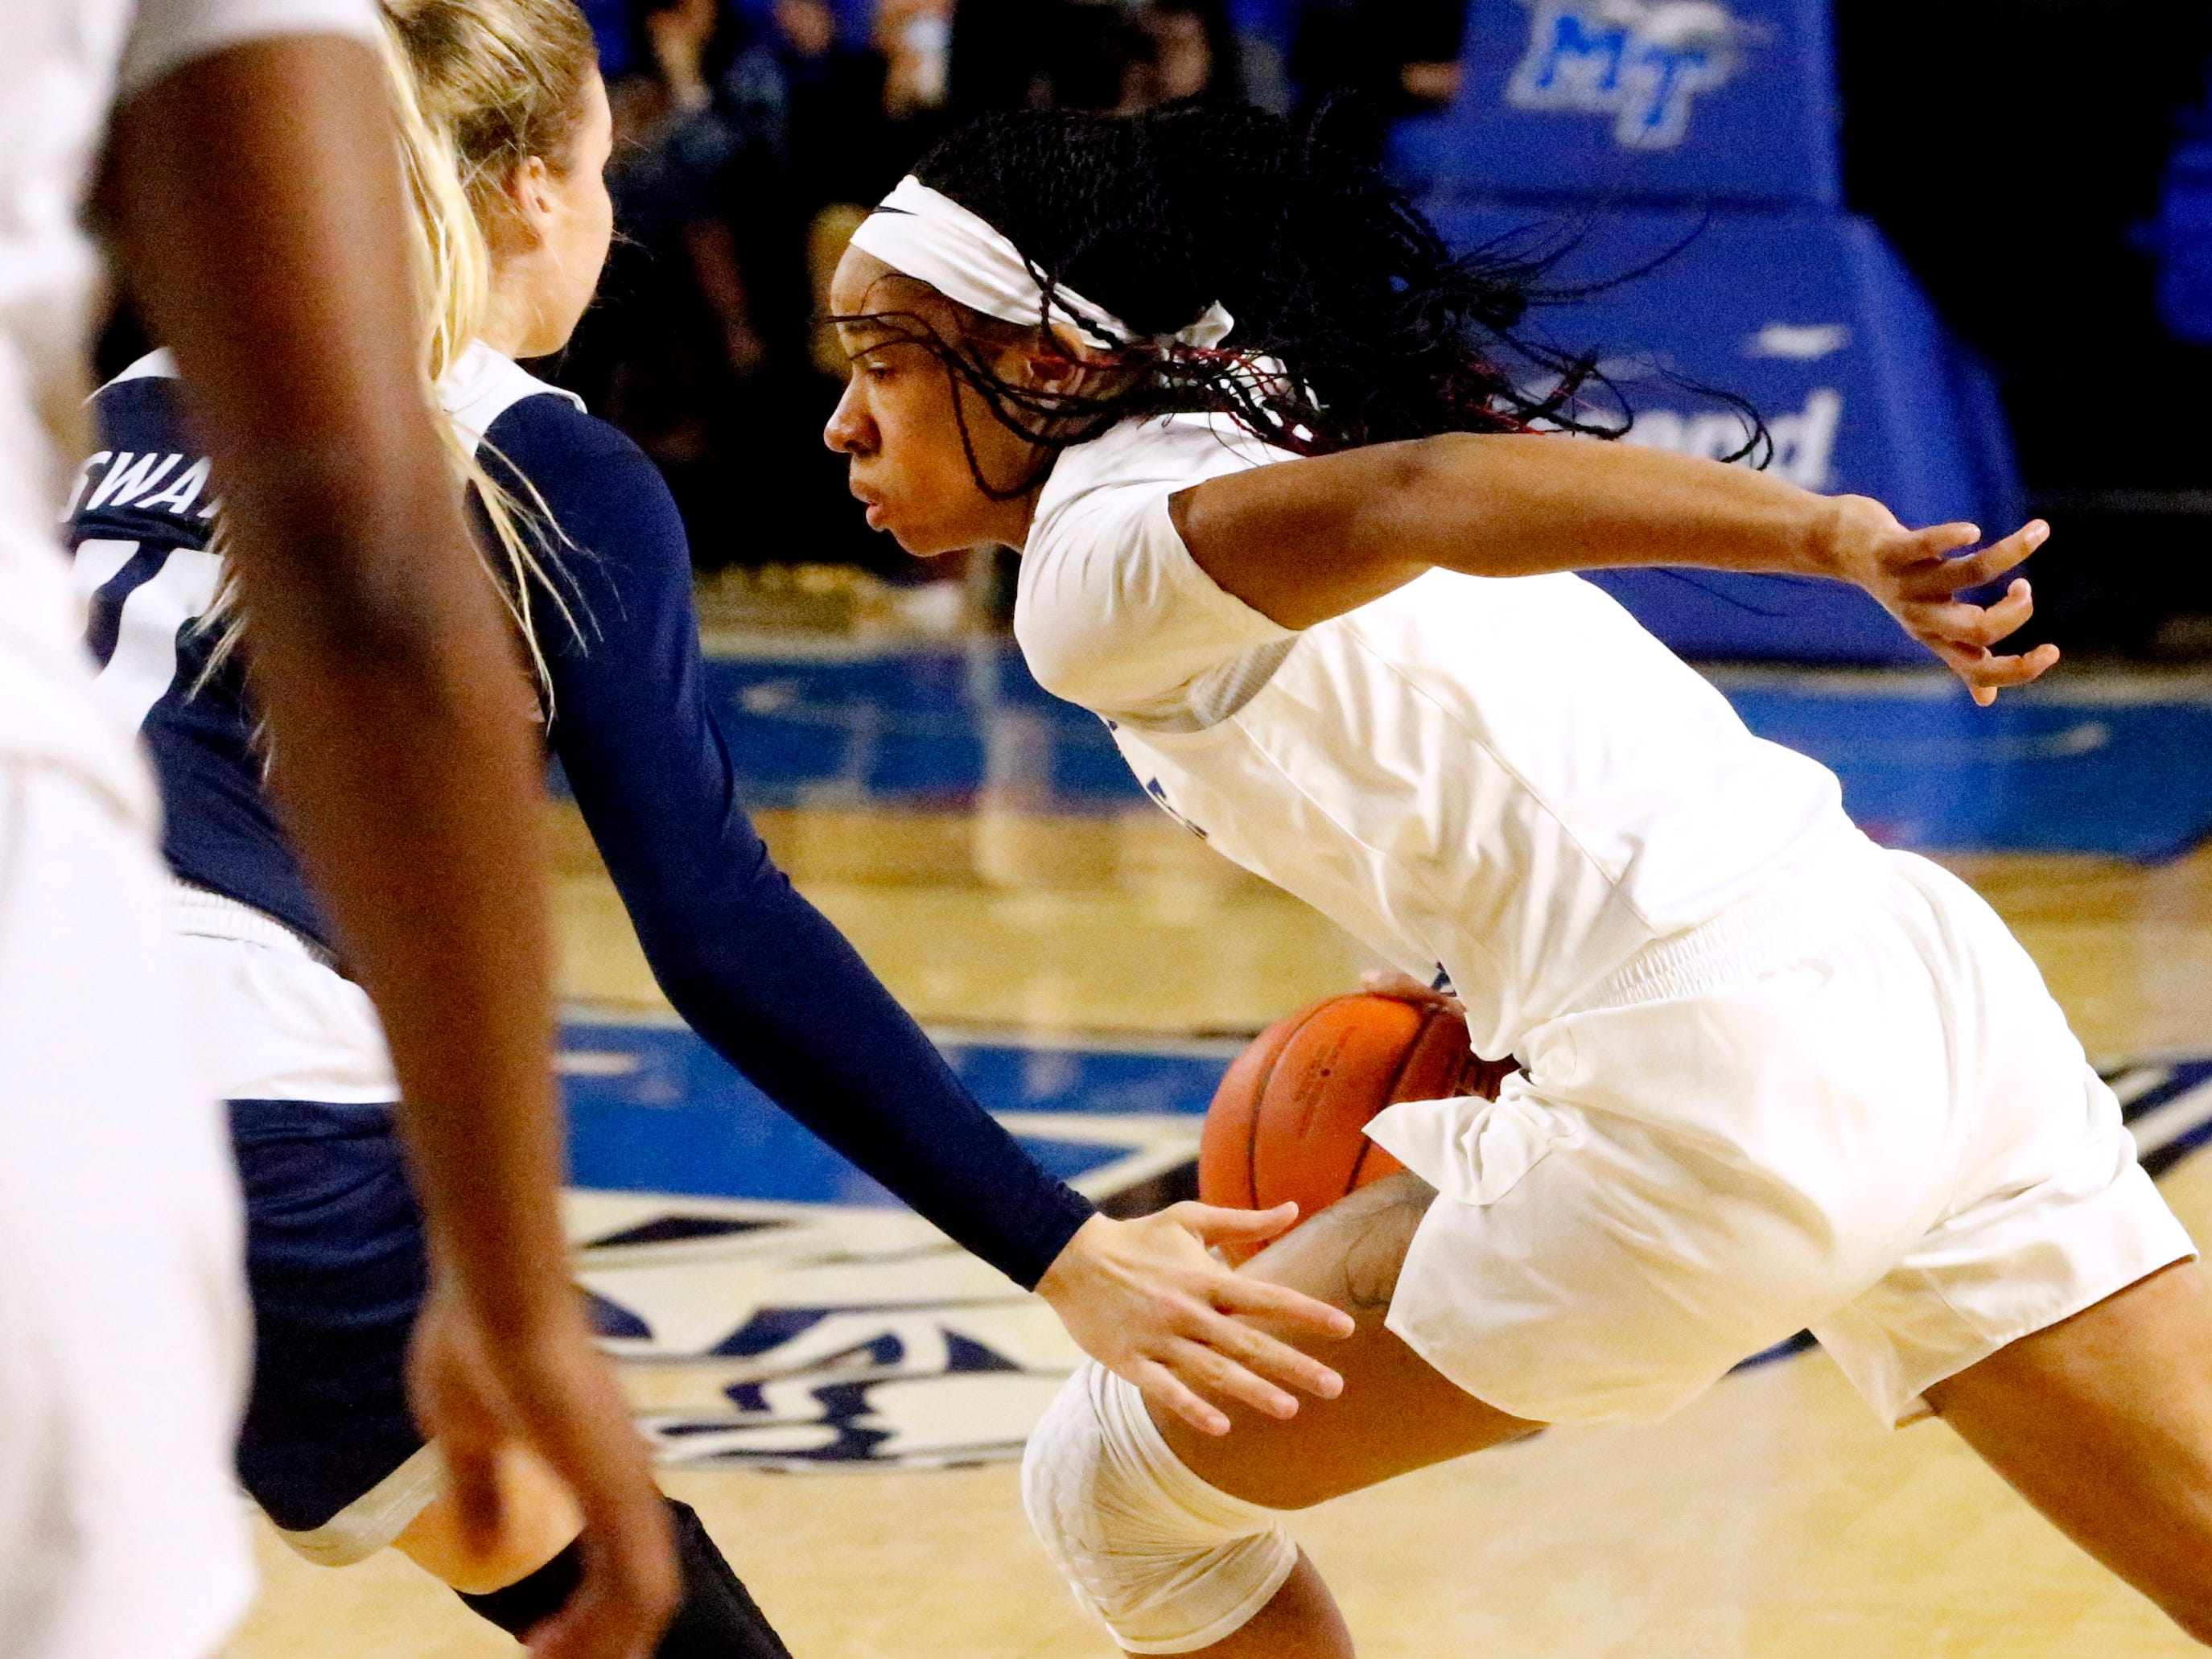 MTSU's guard Kyla Allison (3) moves the ball around the court during the game against Rice on Thursday Jan. 24, 2019.